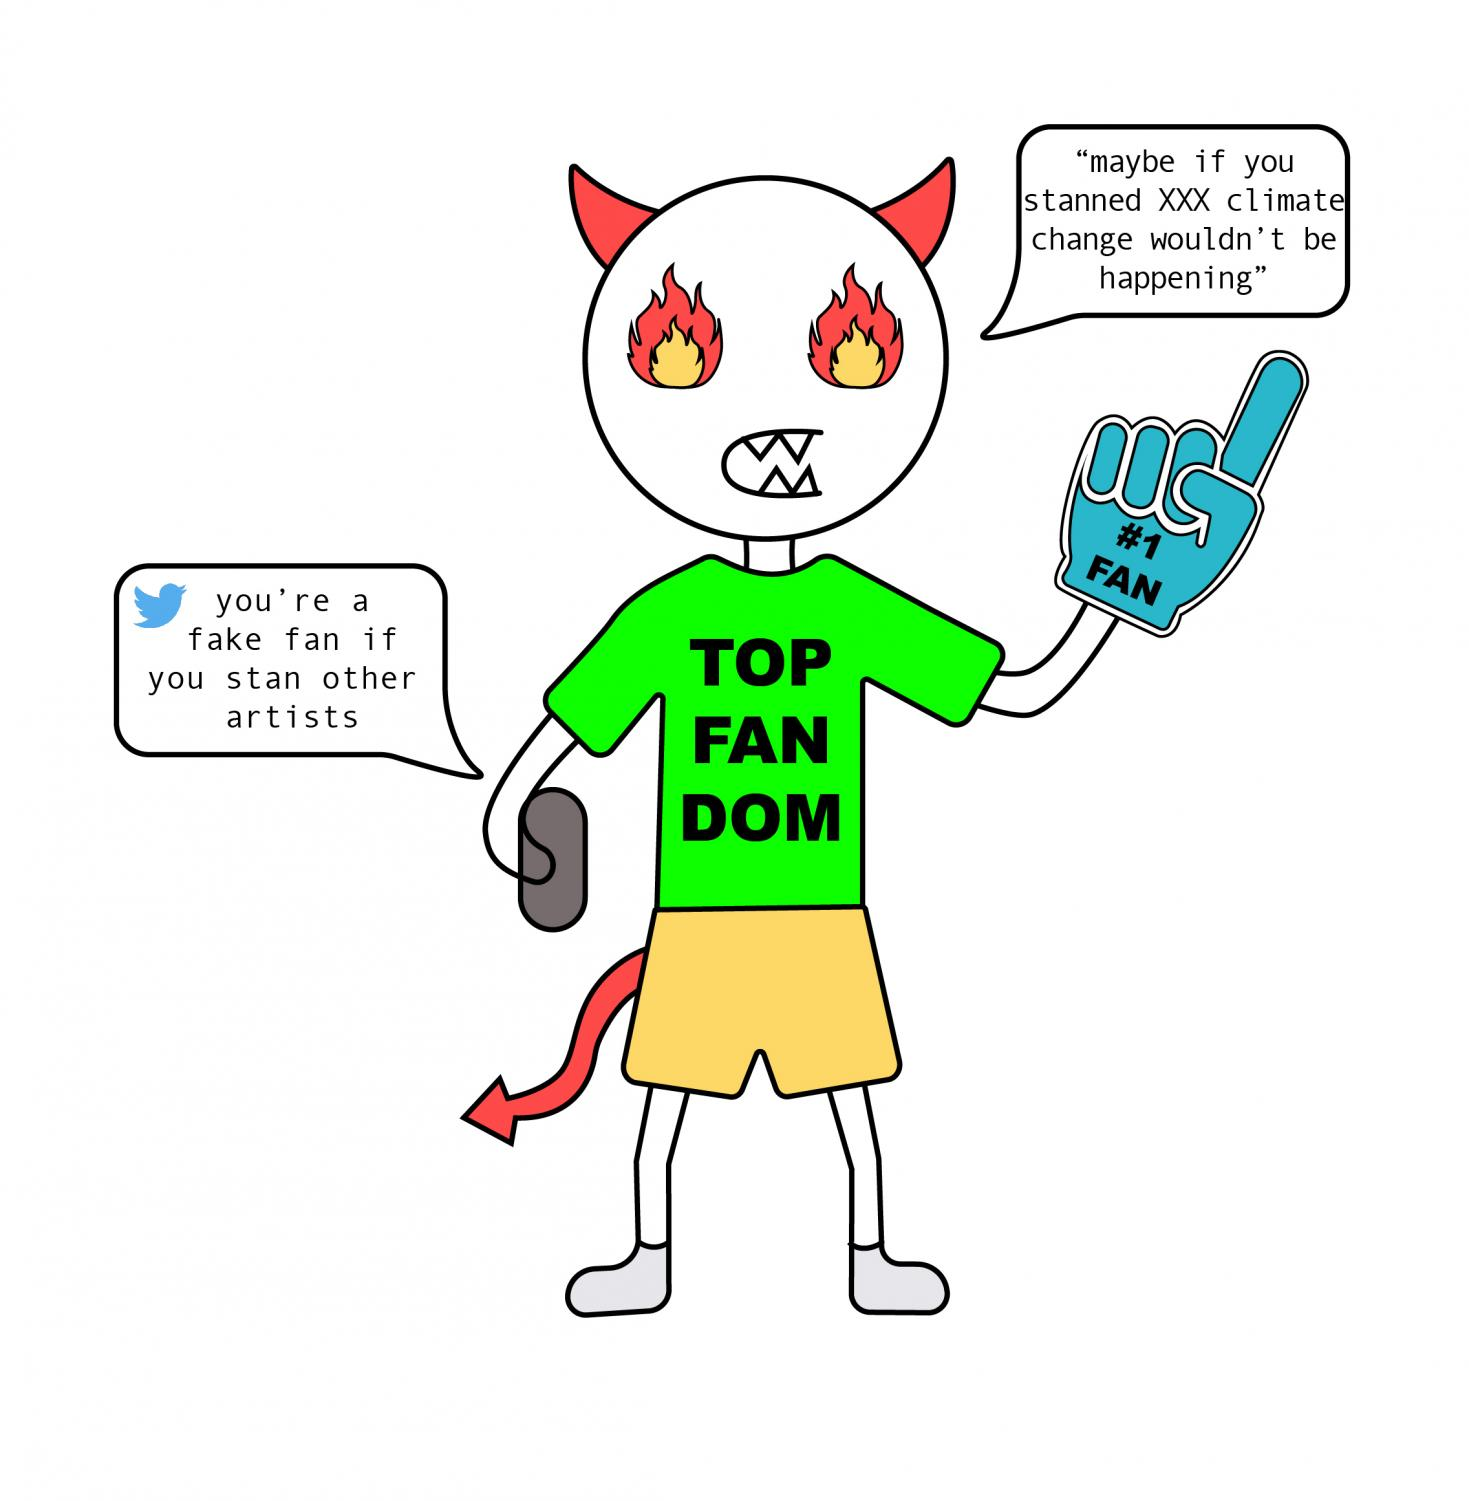 Fans often verbally attack each other, creating a toxic environment.